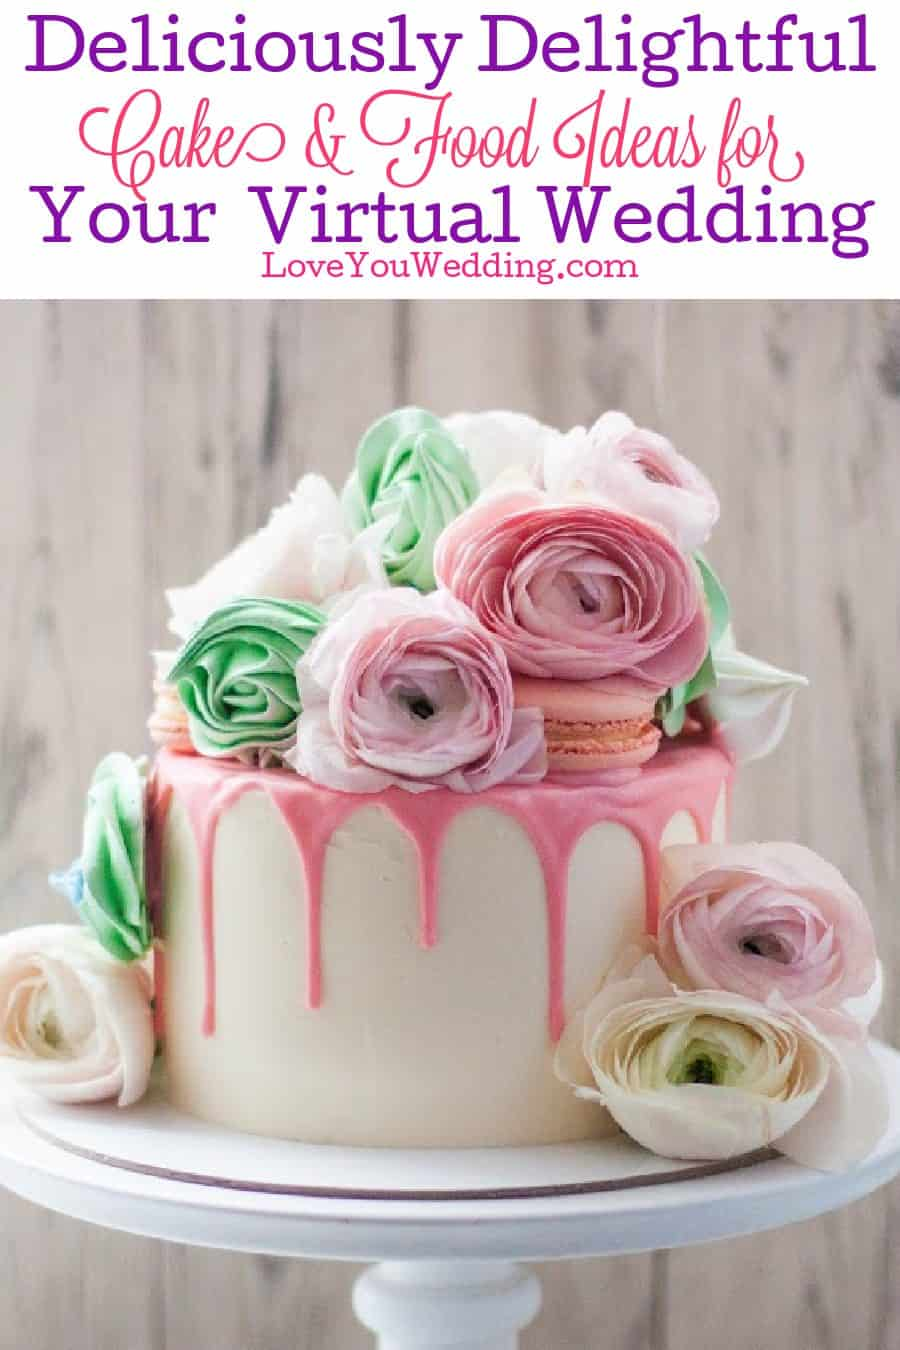 Wondering what to do about cake and food during your virtual wedding? Check out these deliciously delightful ideas that are perfect for two!